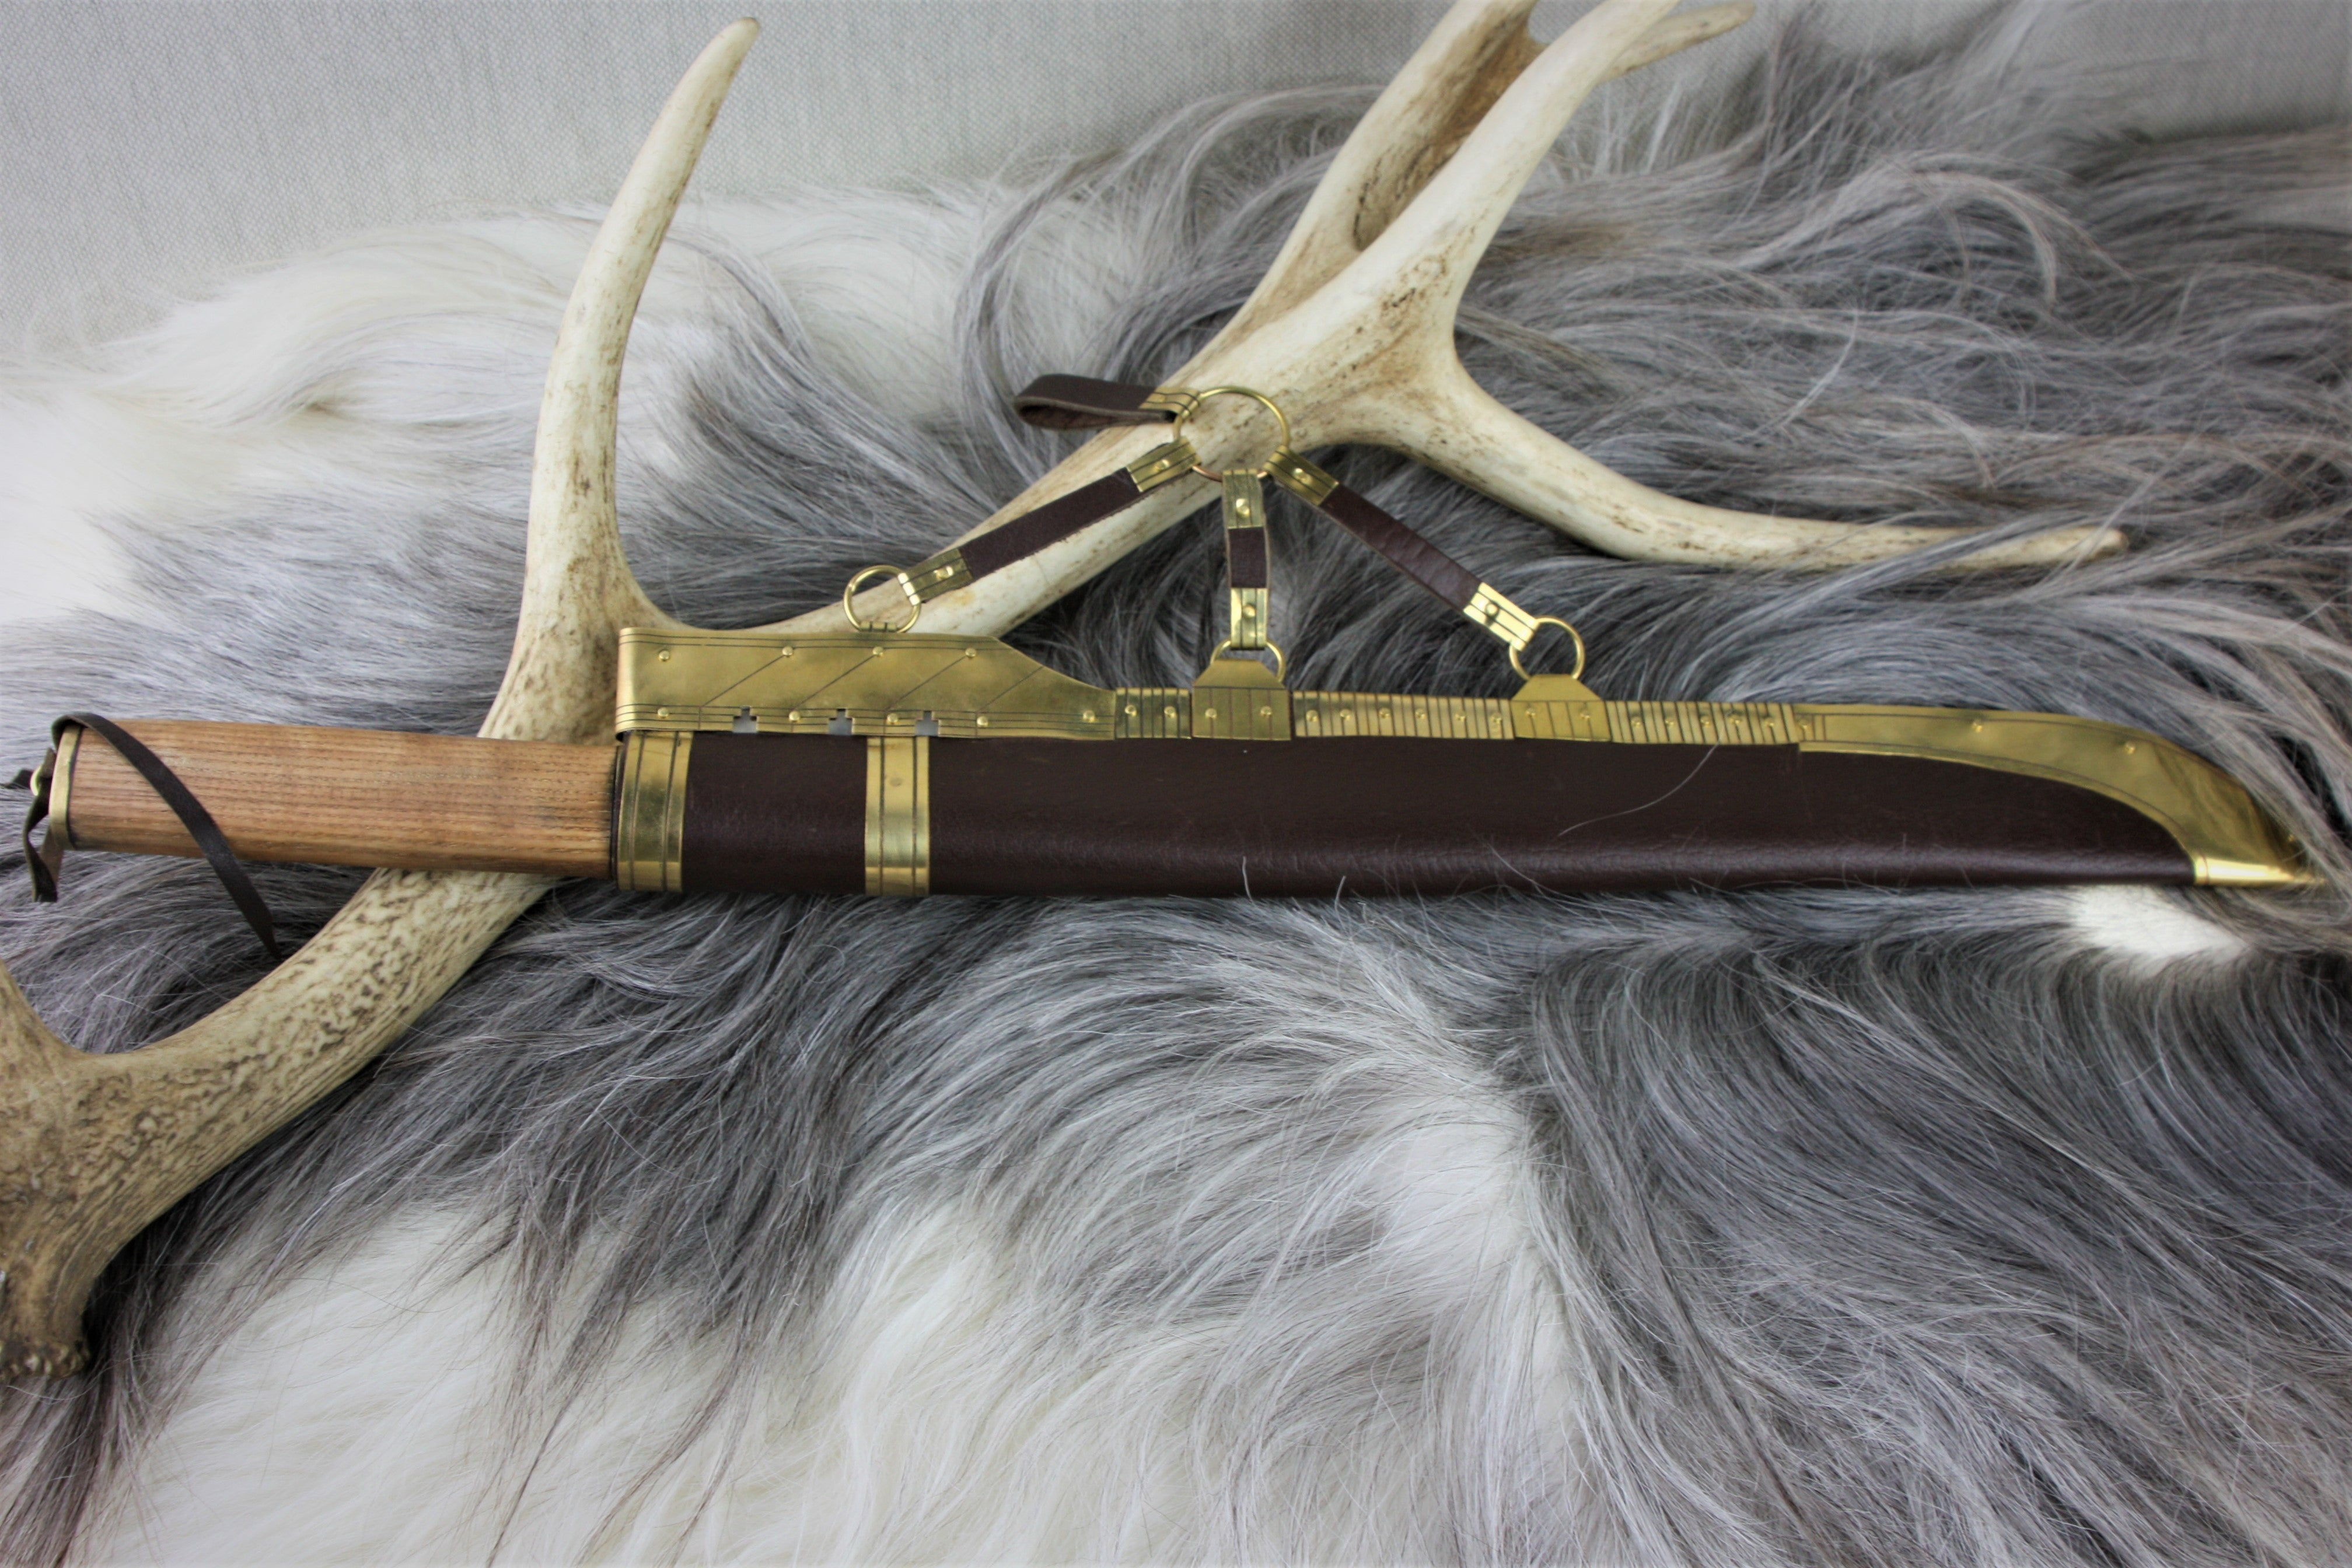 Reenactment Line seax with decorated scabbard